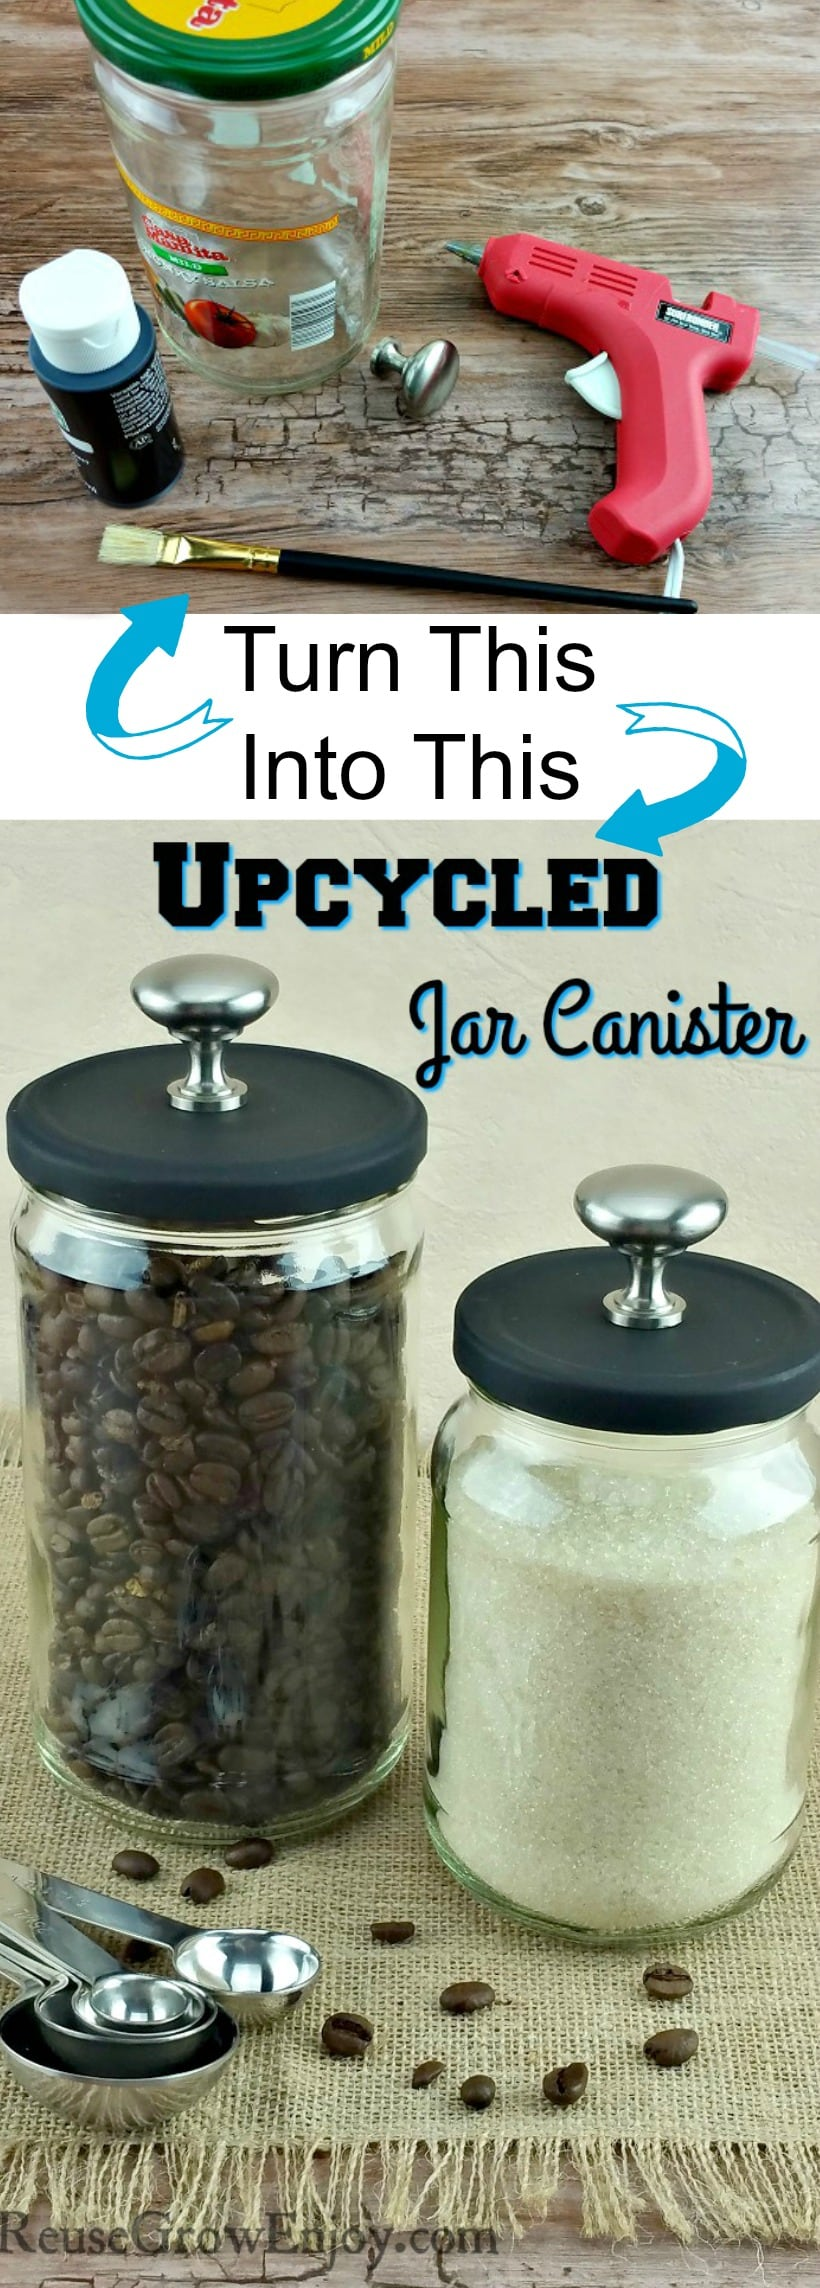 Top picture is supplies to make this Upcycled Jar Craft. Bottom is the jars finished with black lids and stainless steel knobs on top. One jar filled with coffee beans and the other with raw sugar.